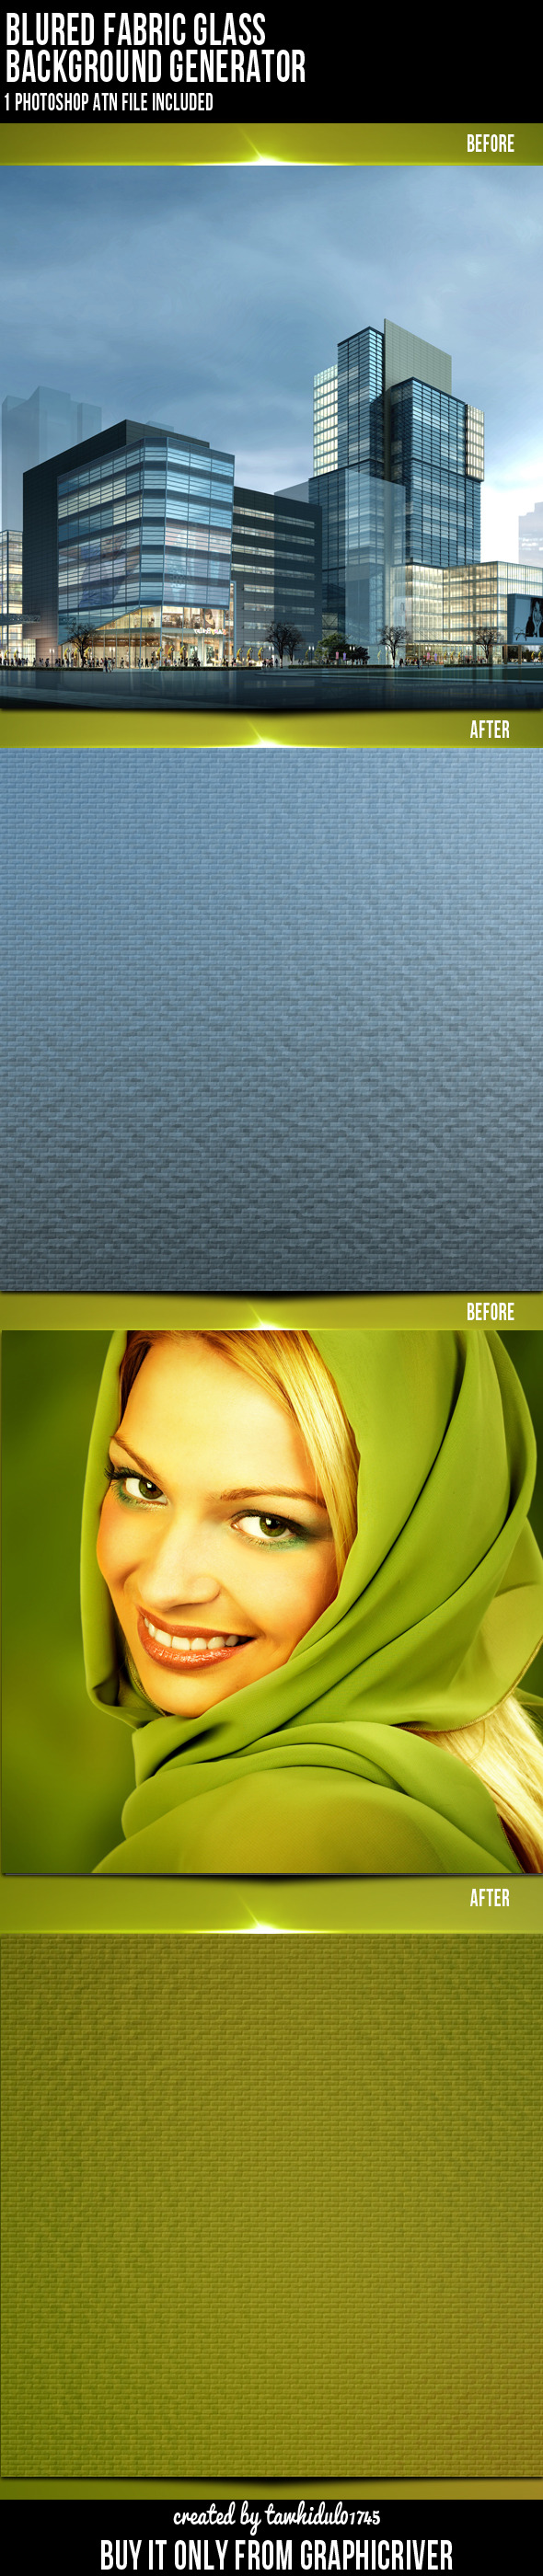 Background Generator Photoshop Action - Actions Photoshop